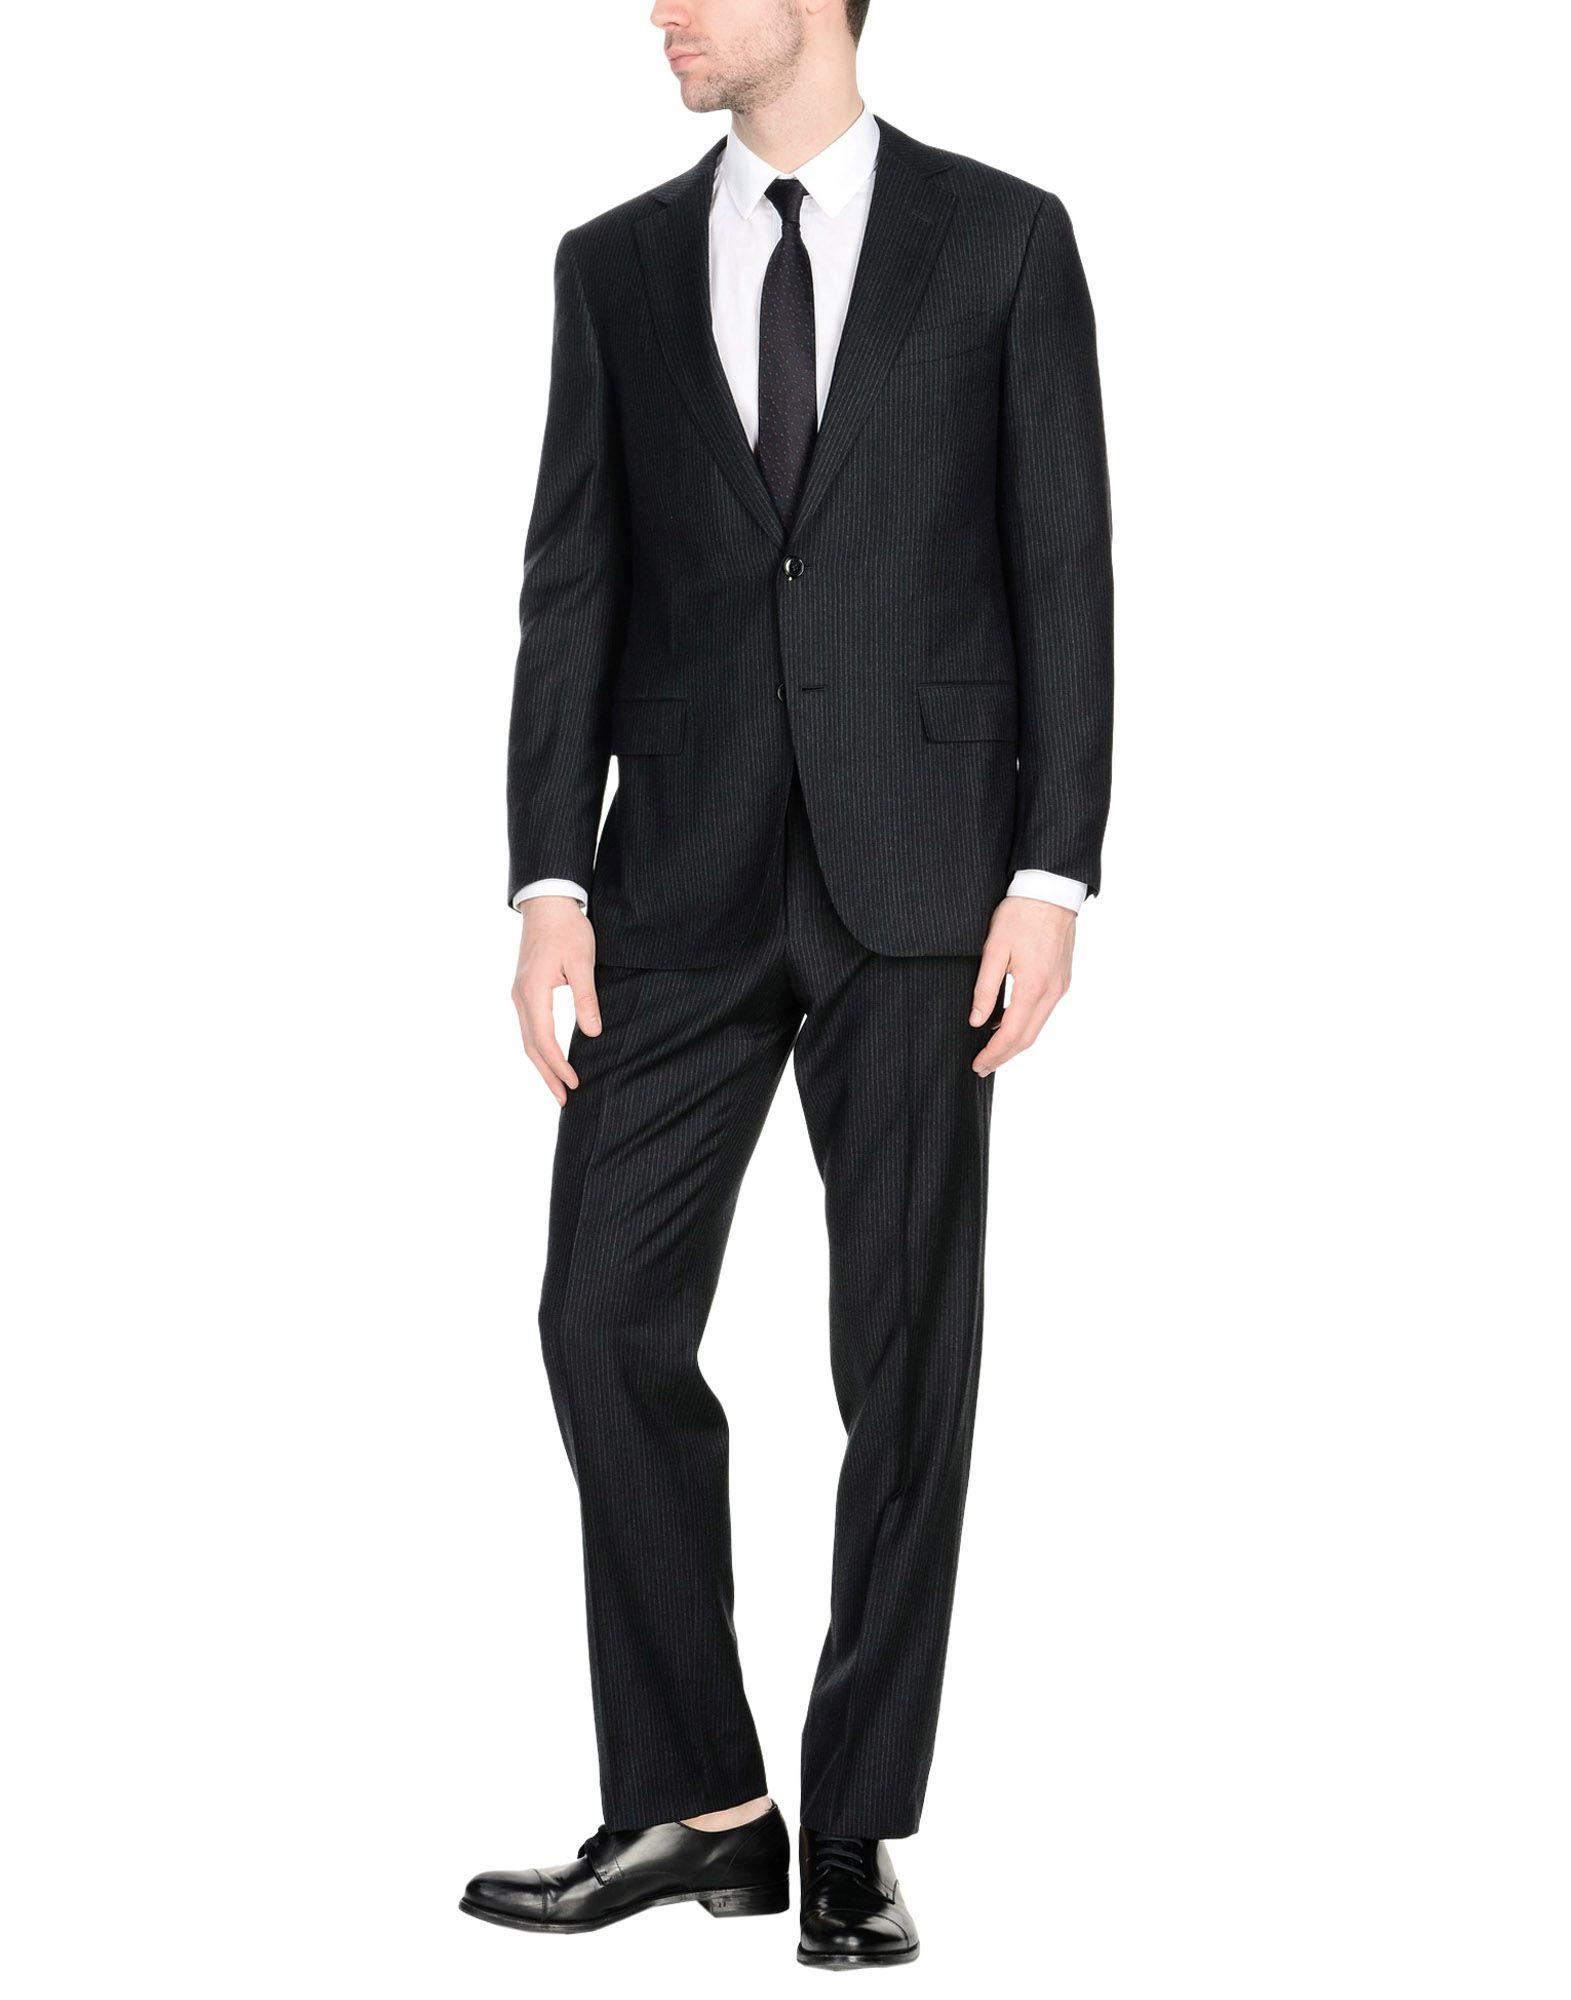 Ermenegildo Zegna Suits In Steel Grey